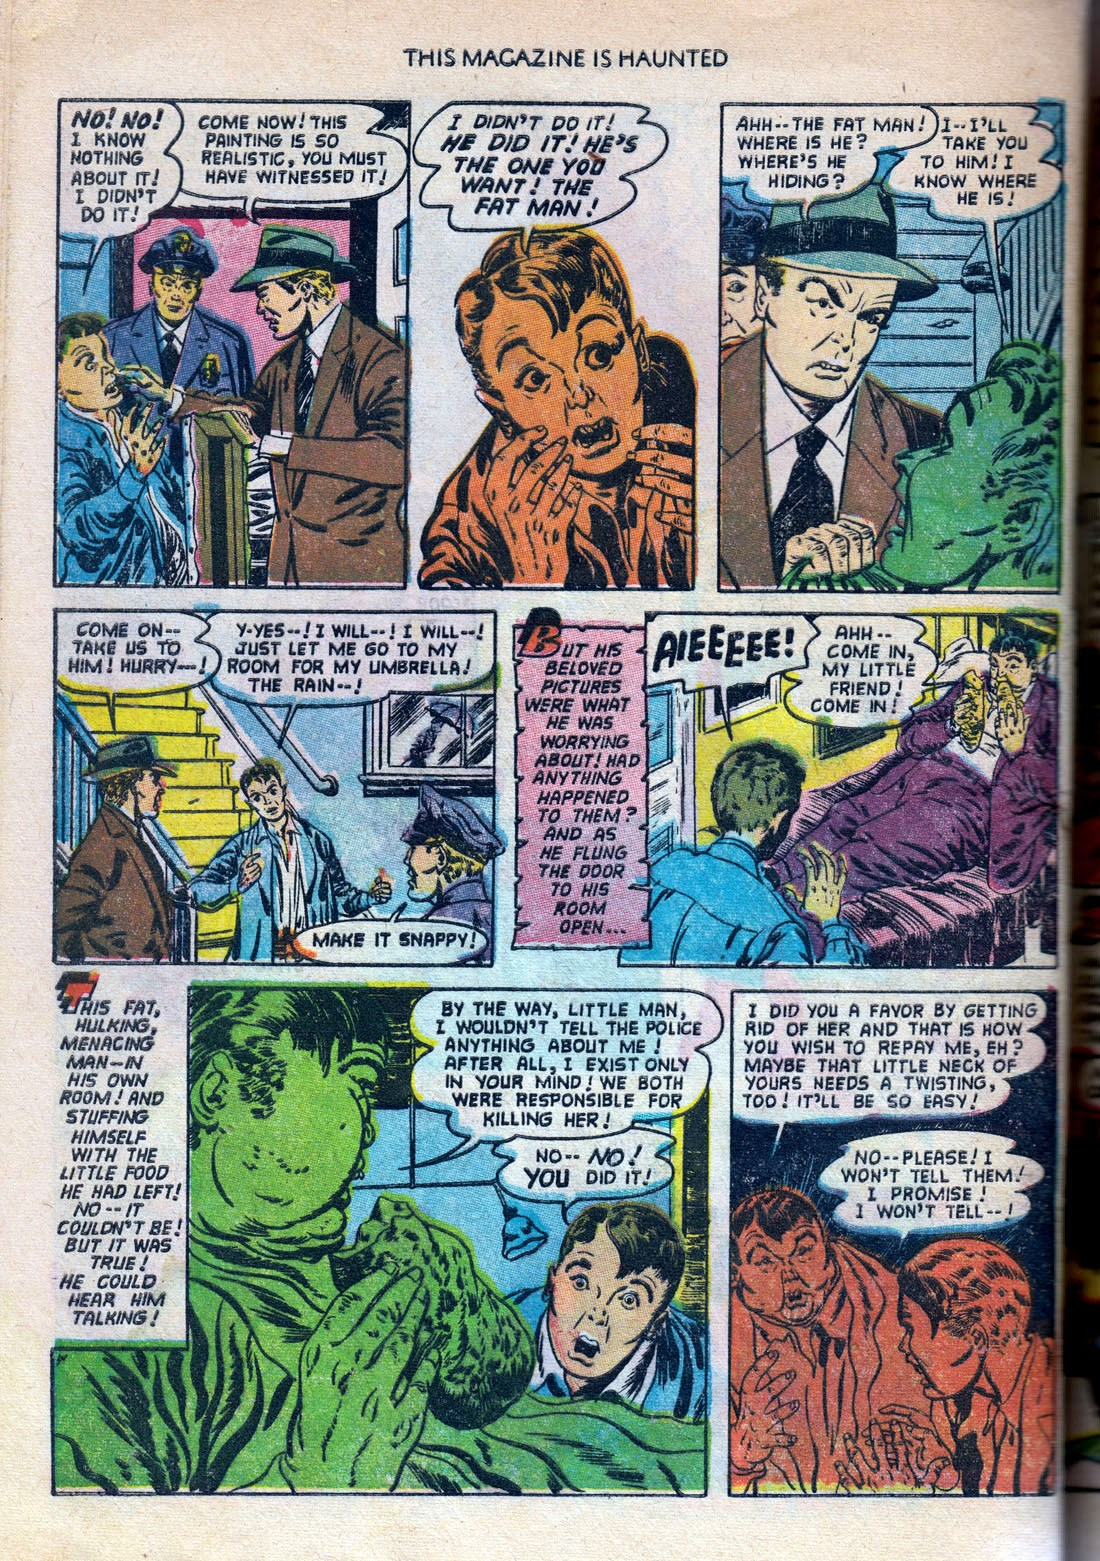 Read online This Magazine Is Haunted comic -  Issue #10 - 32